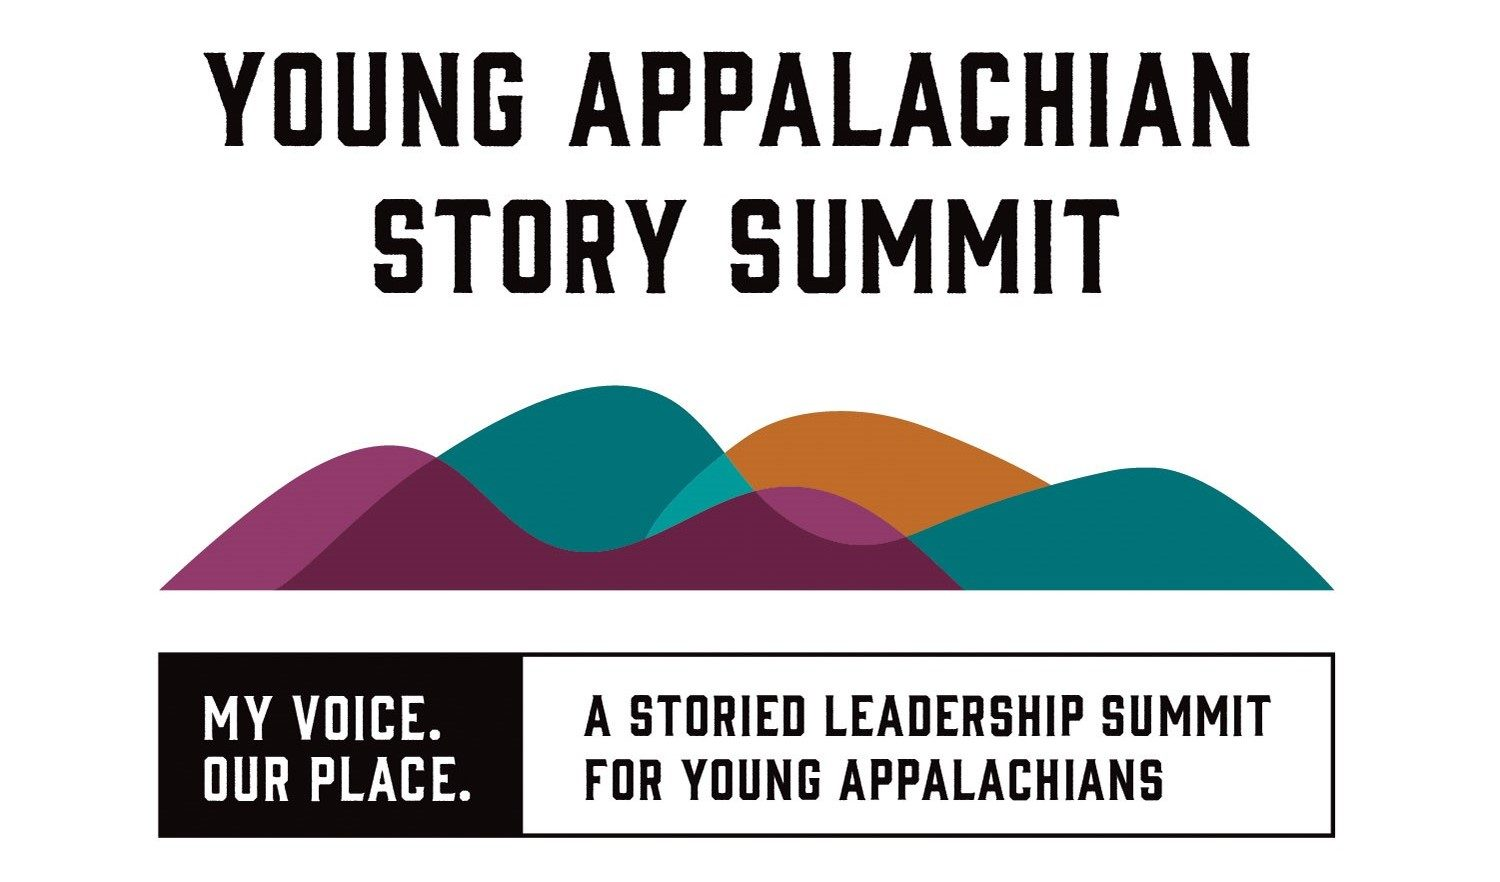 Young Appalachian Story Summit